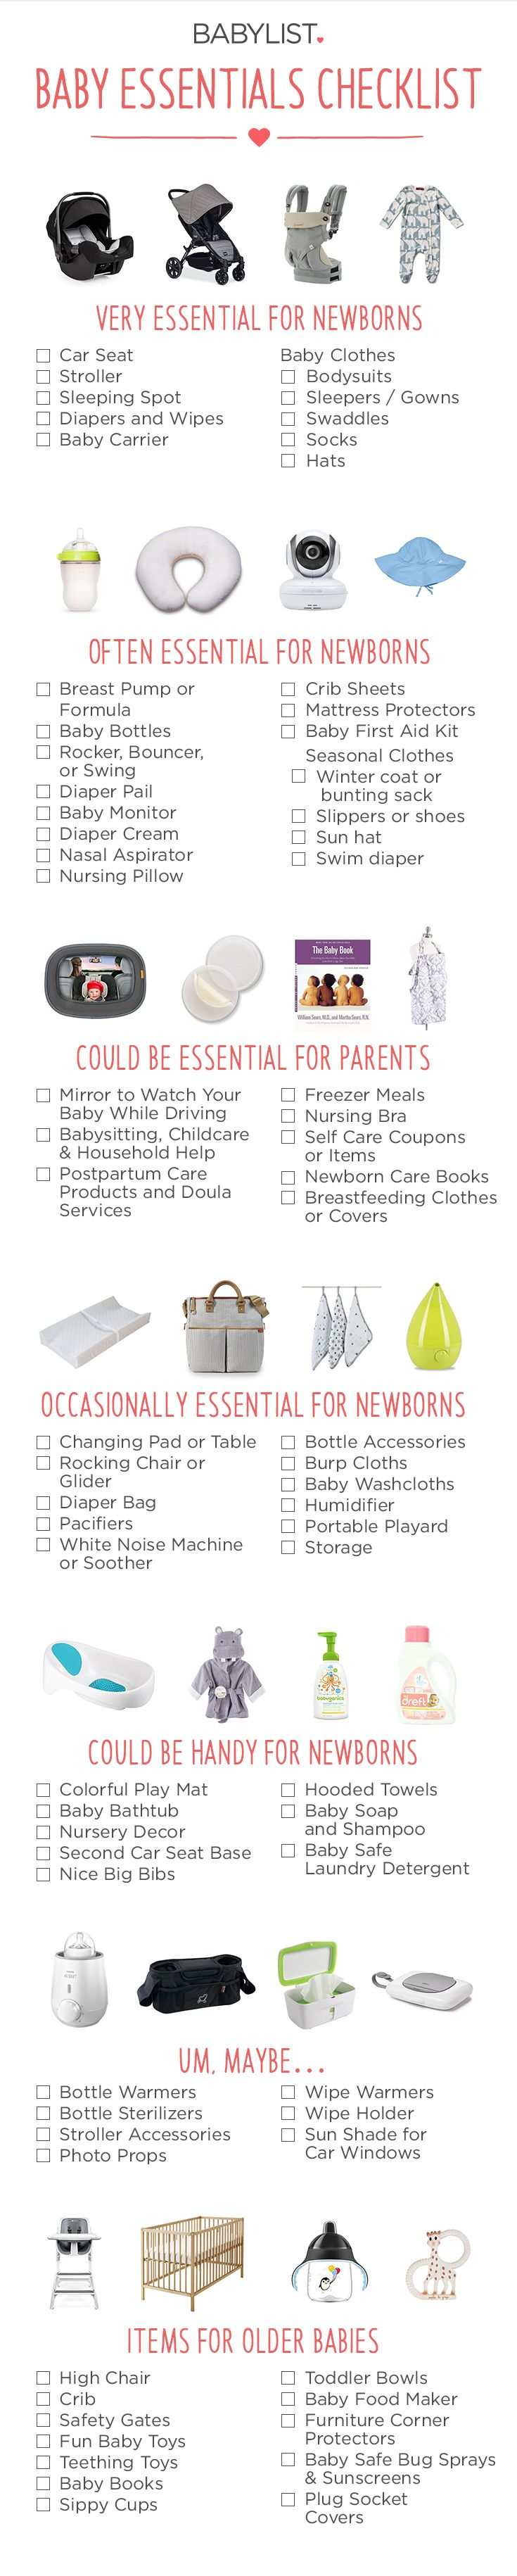 "We ranked baby essentials from ""VERY essential"" to ""Um, Maybe"", to take the hassle out of deciding what to skip."